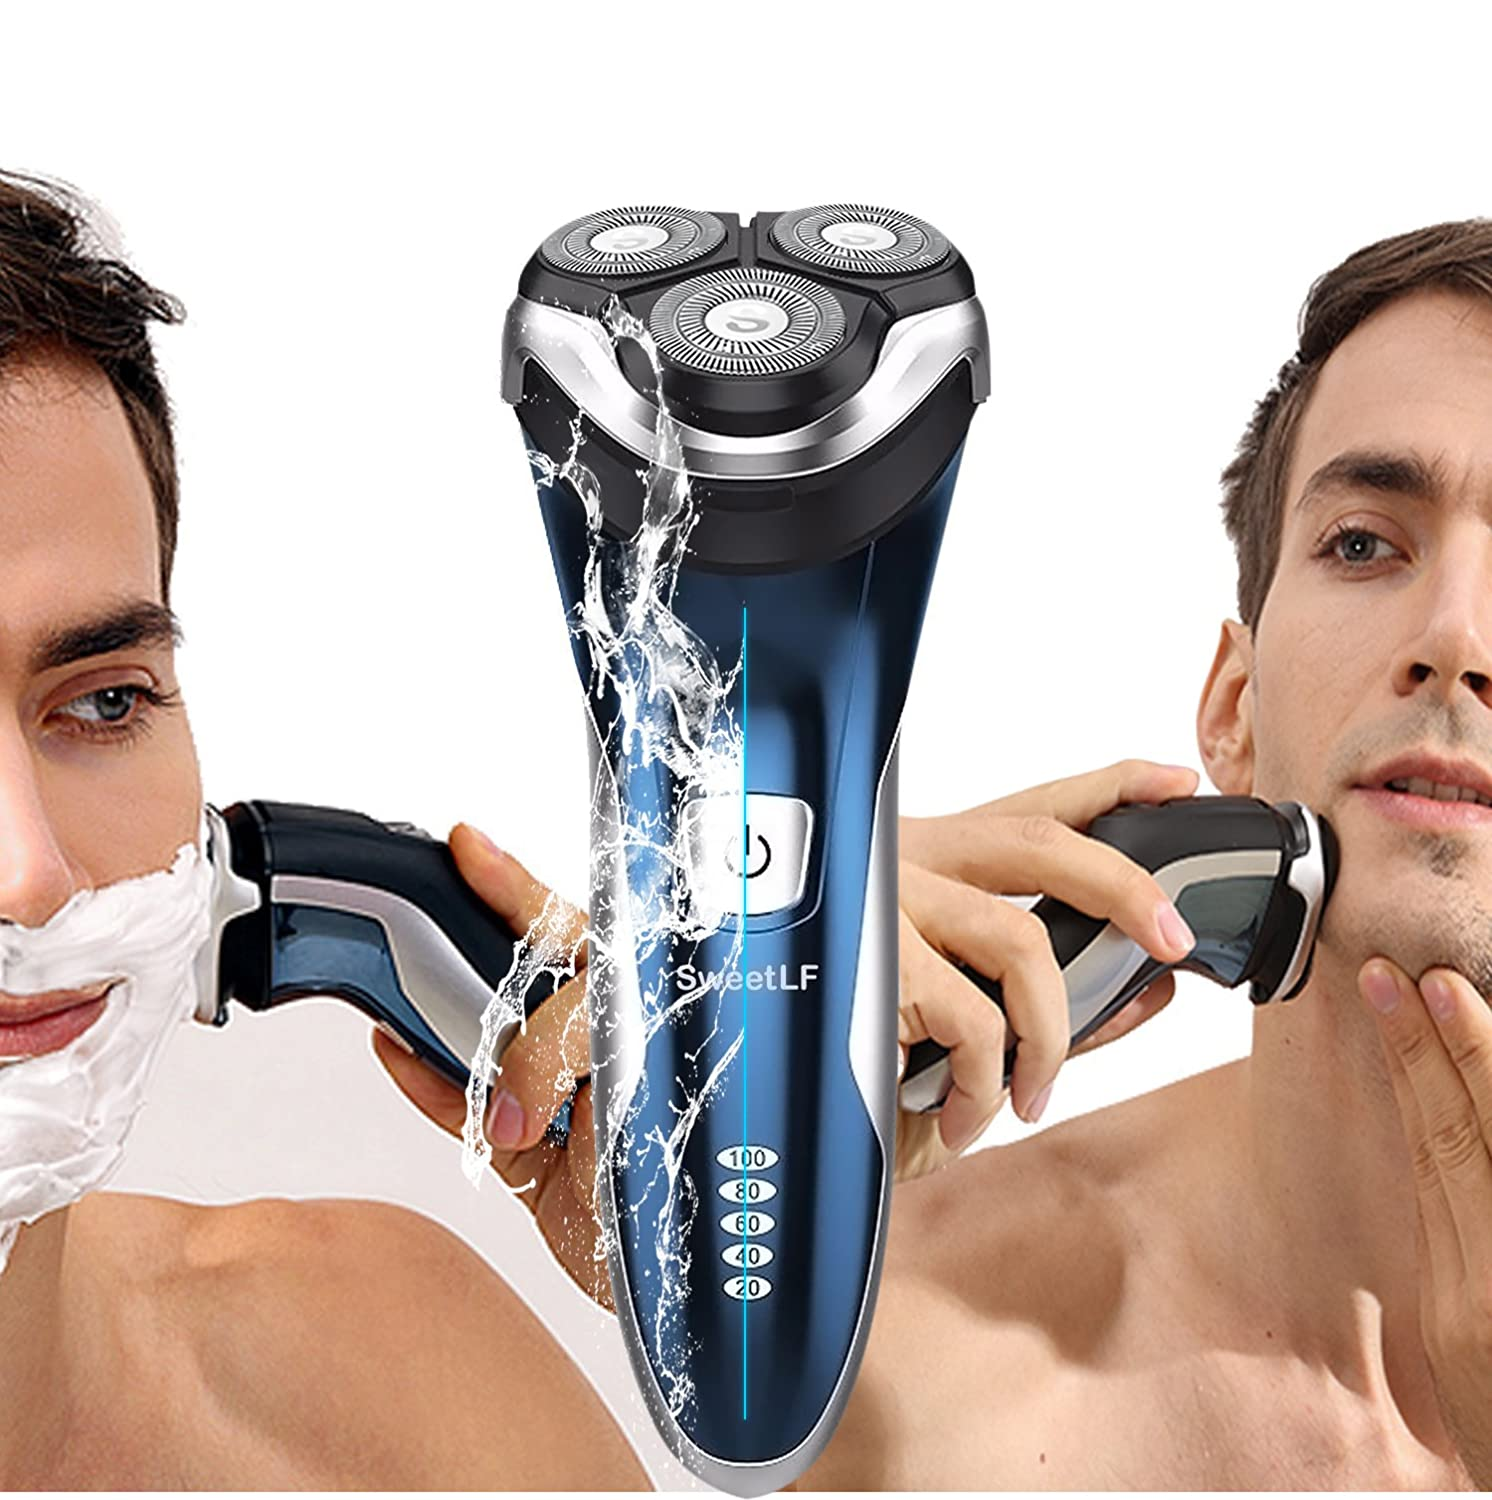 Men's 3D Electric Shaver, Rechargeable Waterproof Rotary Razor with Pop-up Trimmer - Blue